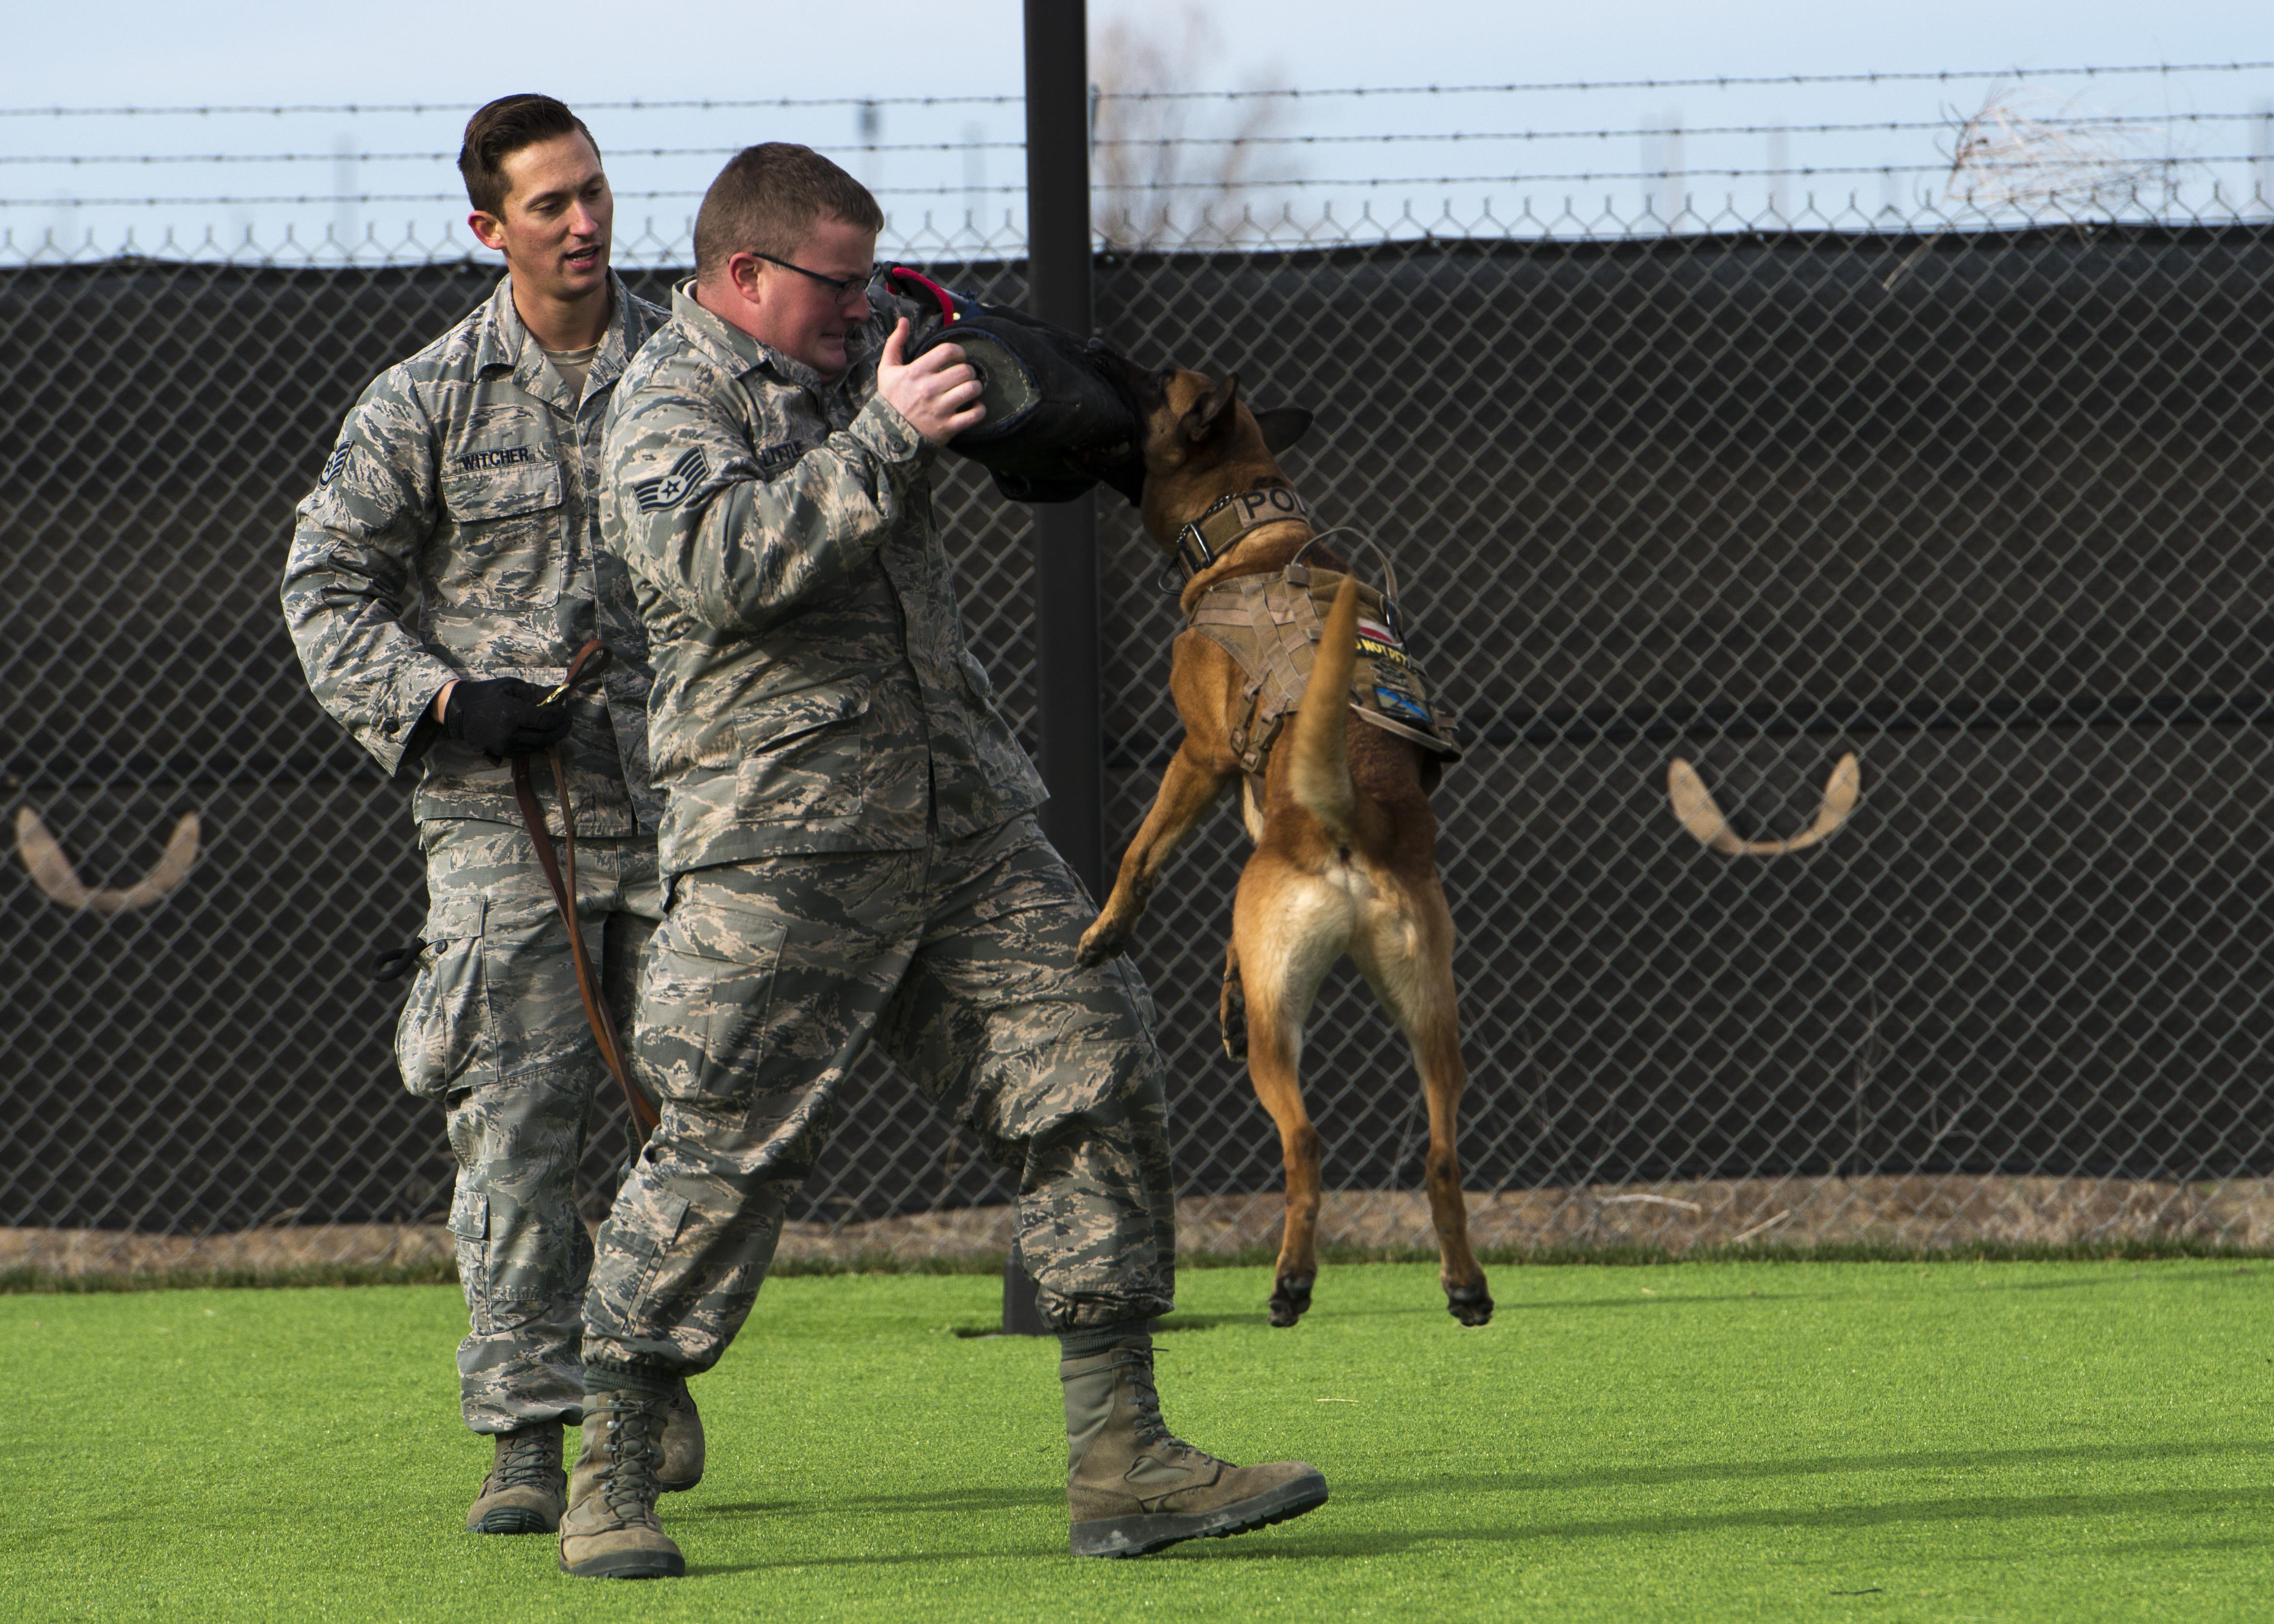 Mountain Home Air Force Base Opens New Military Working Dog